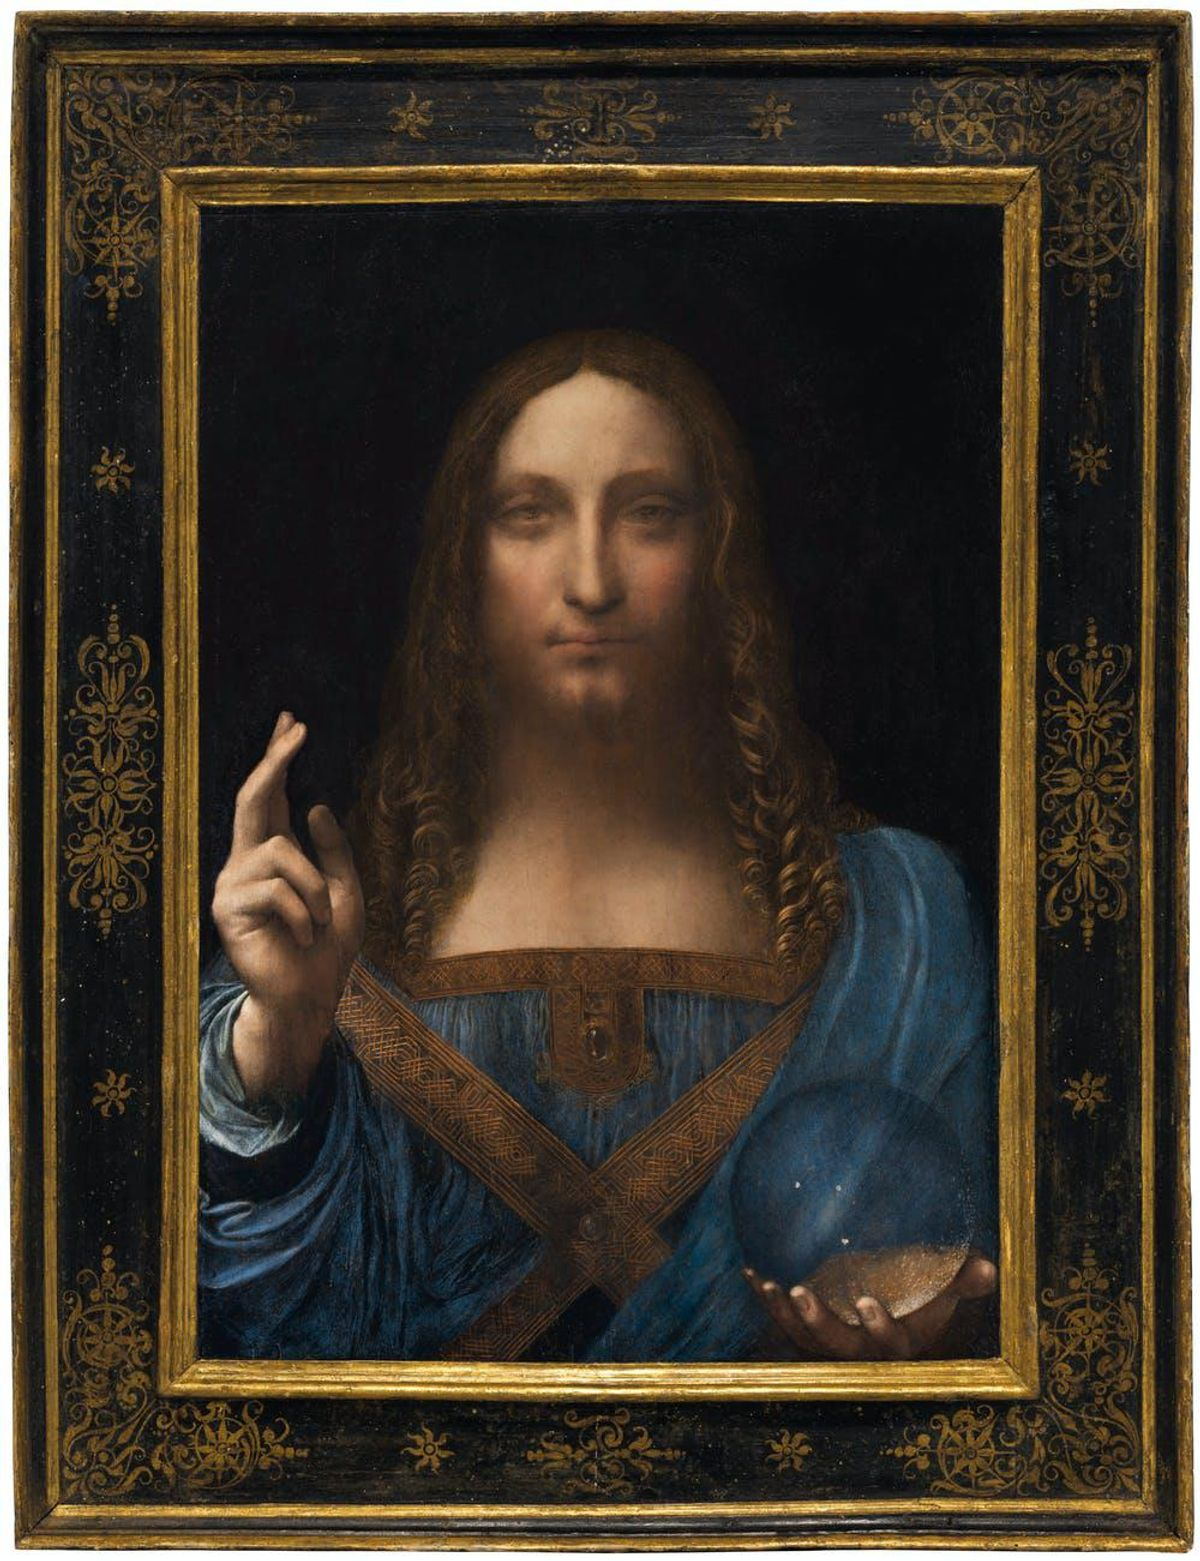 World's priciest painting not a full da Vinci, claims doc